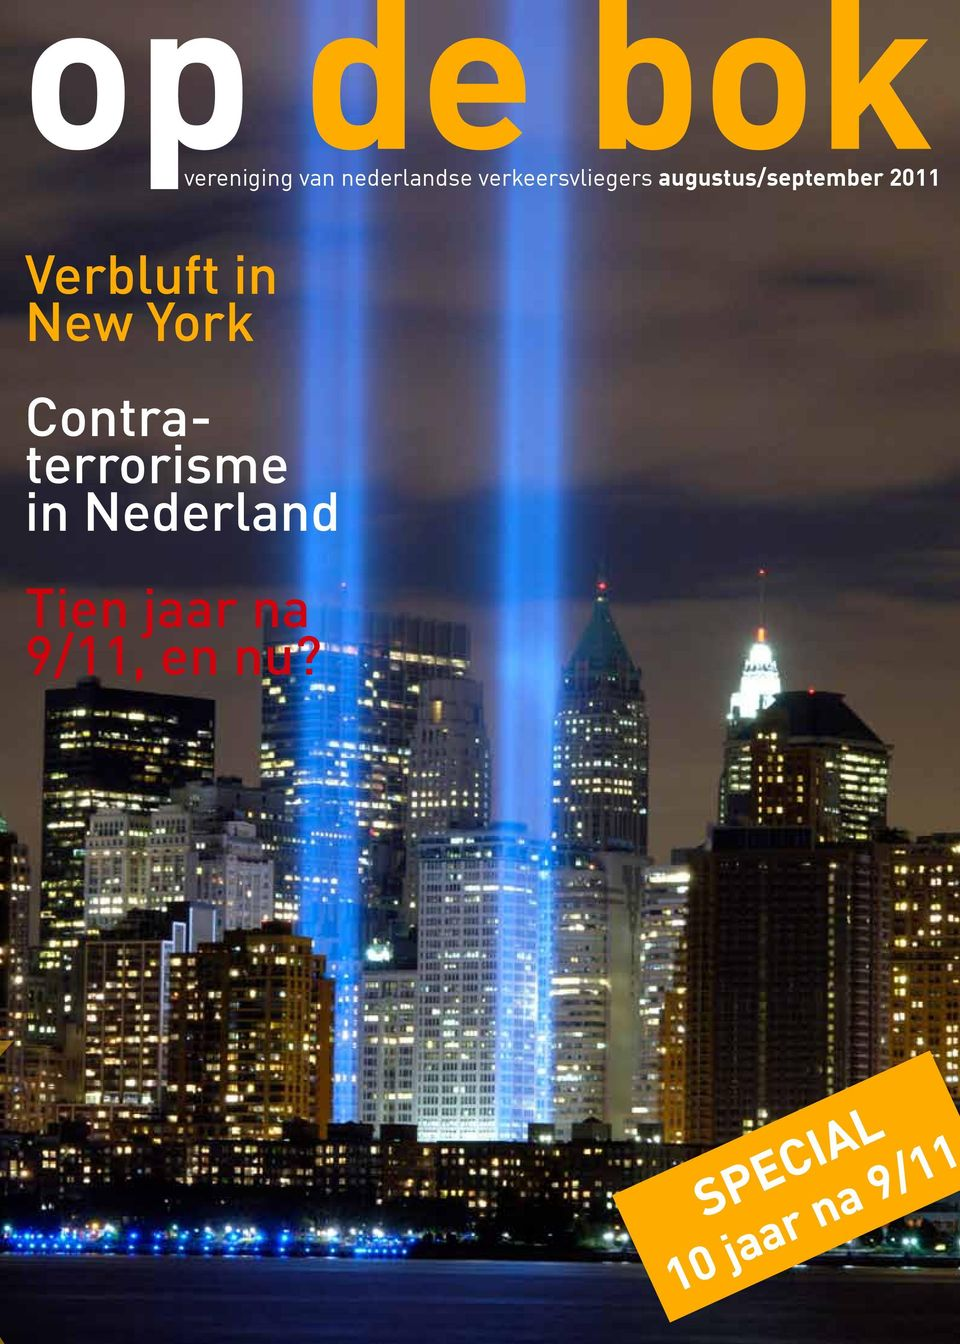 Verbluft in New York Contraterrorisme in